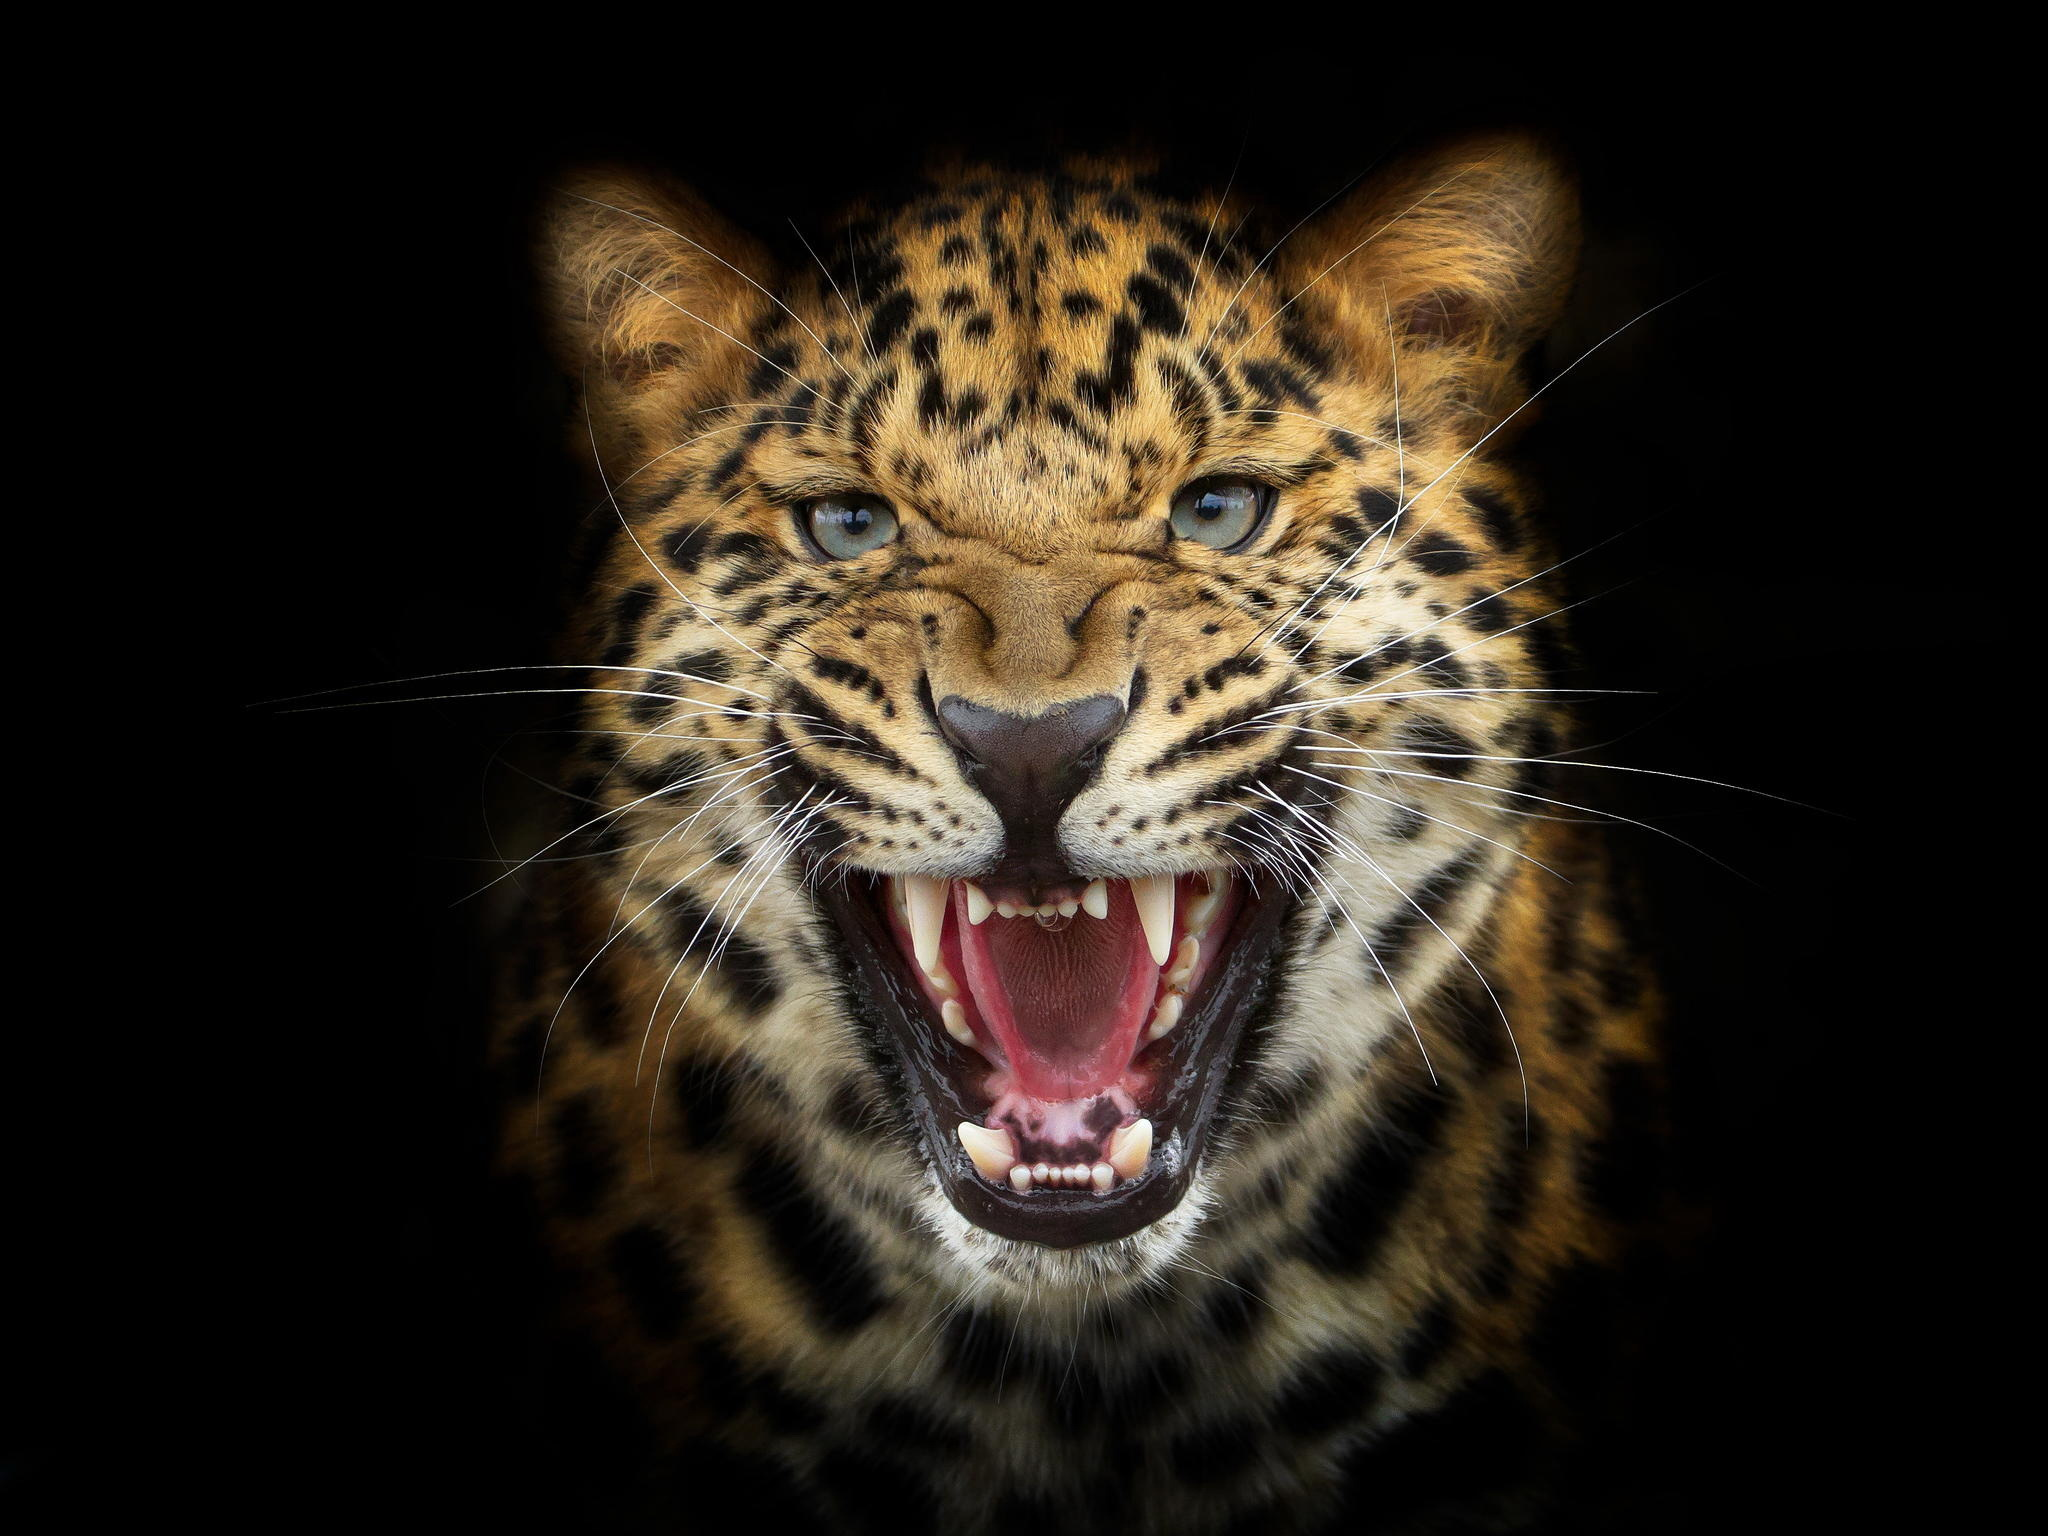 Leopard roar wallpaper